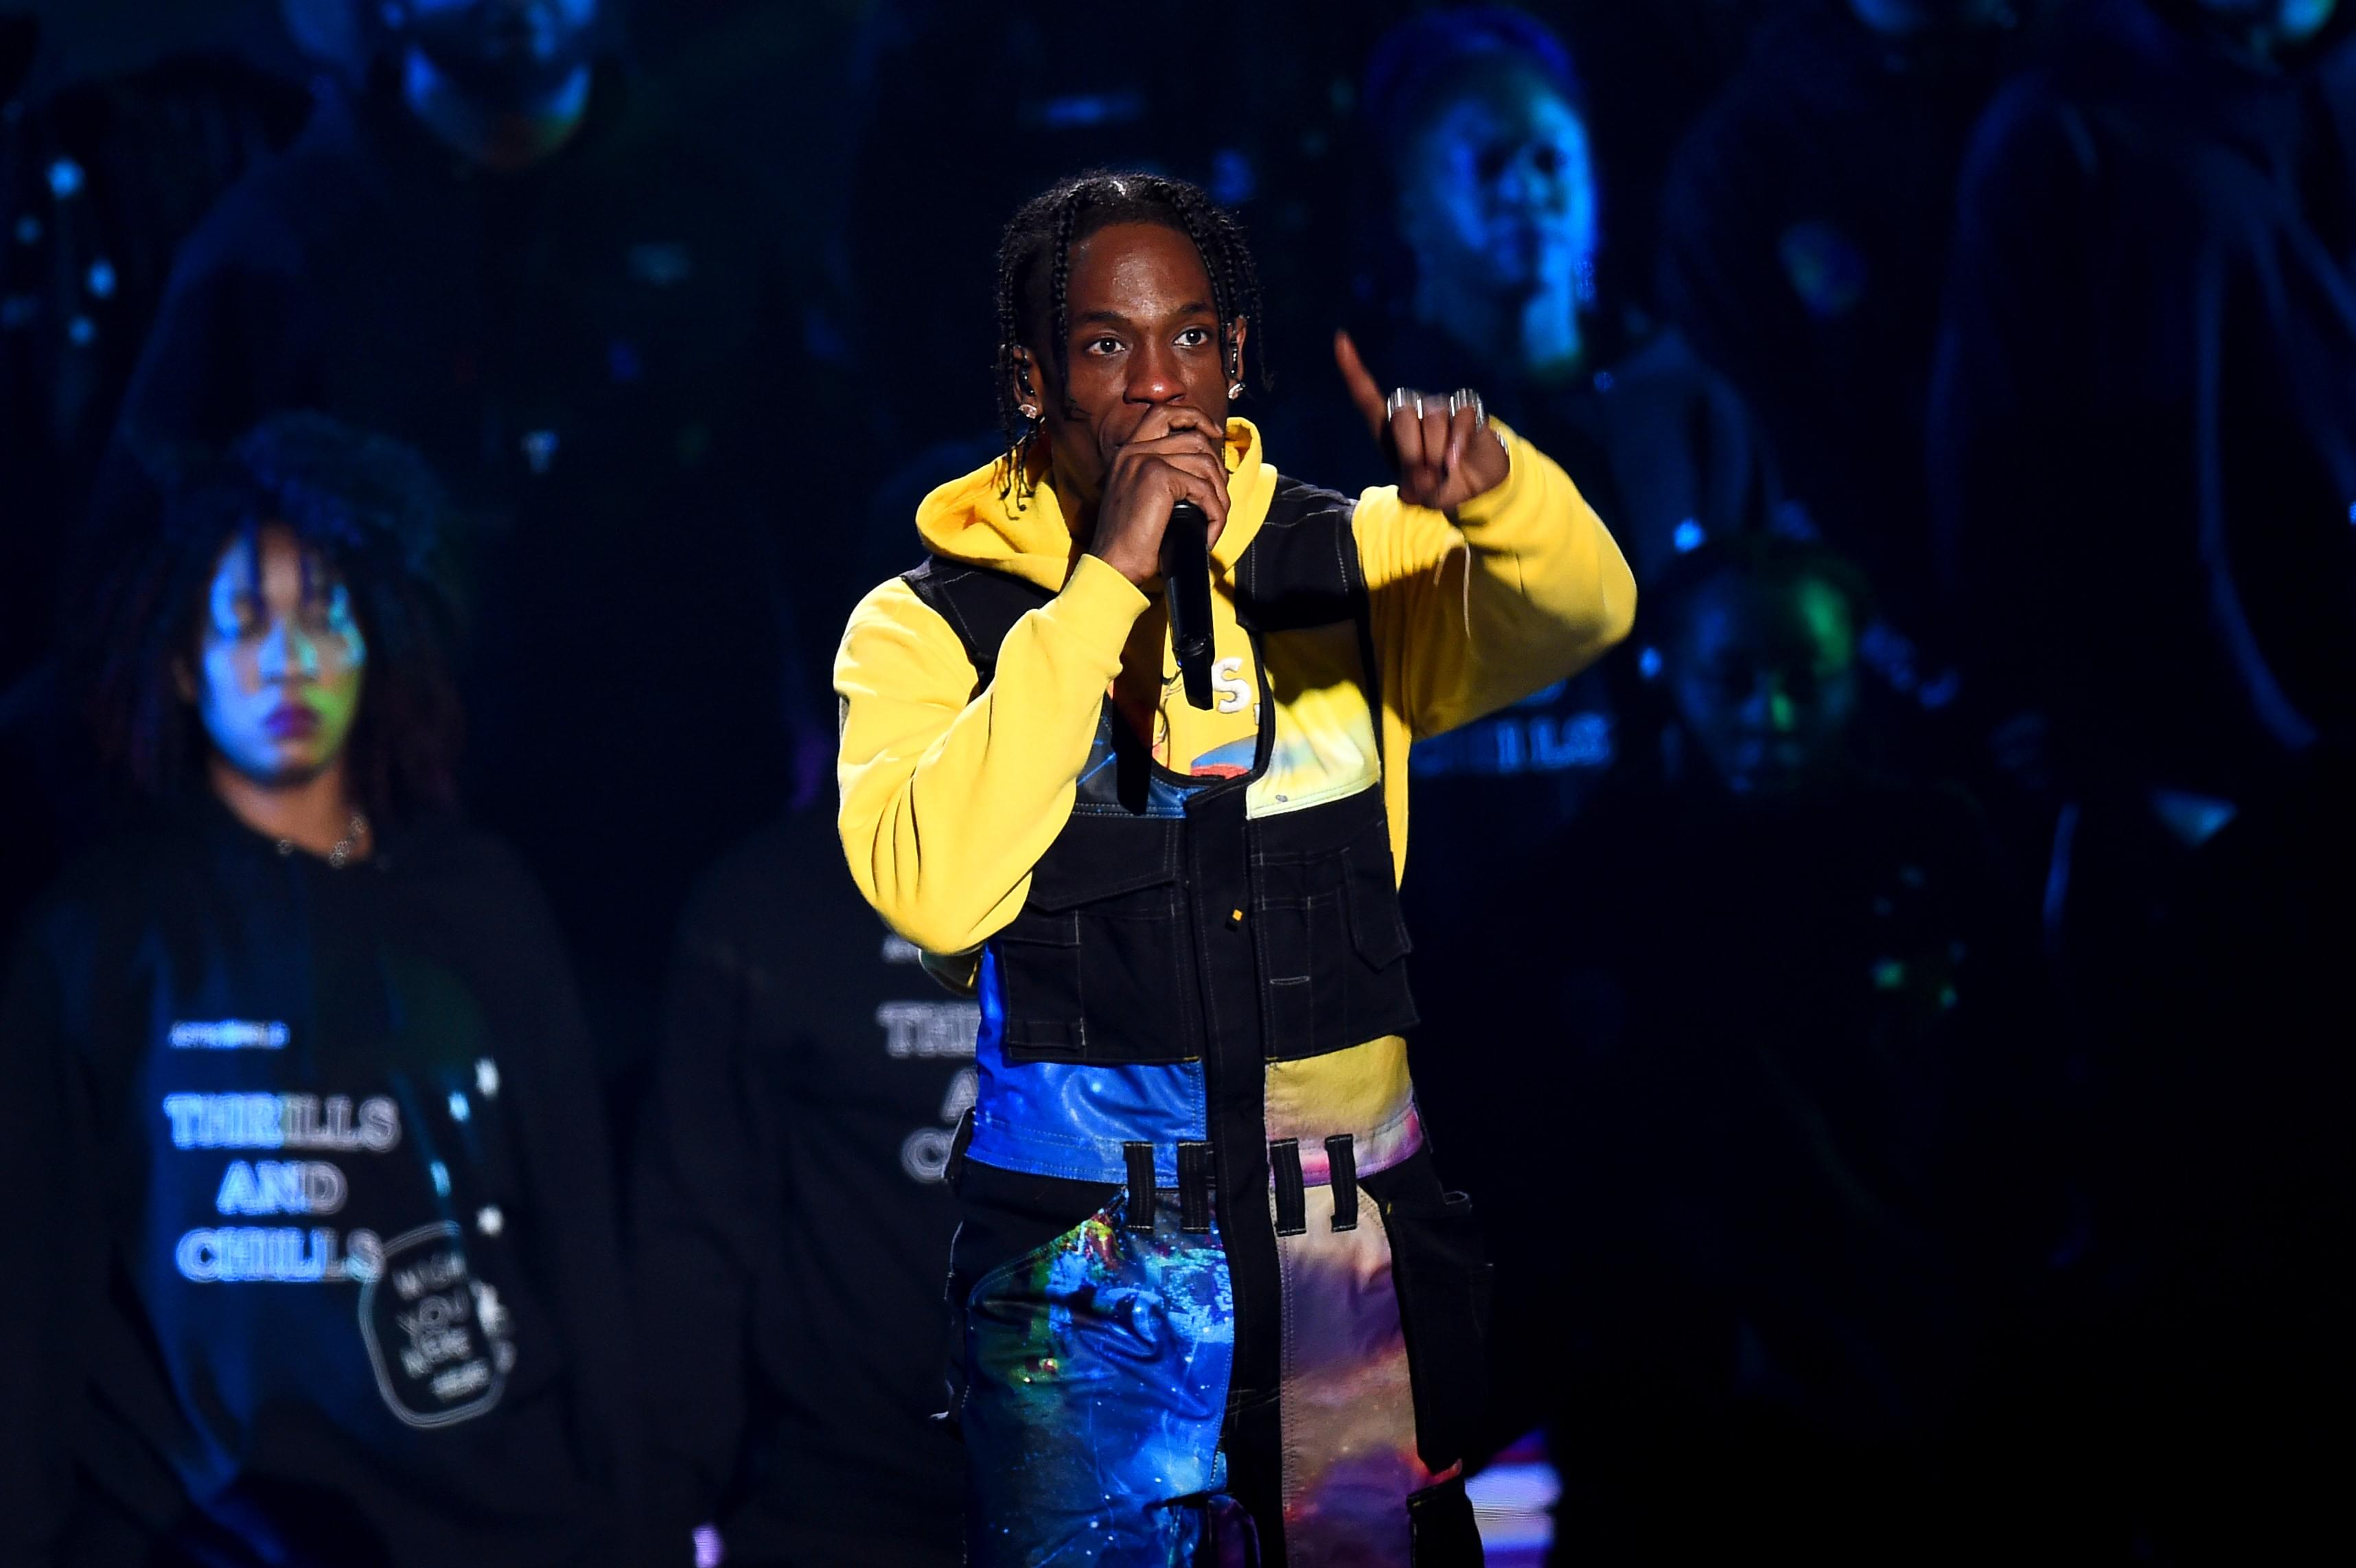 df57cba410b0 Travis Scott Shows His Support For Democratic Party Nominee, Beto O ...